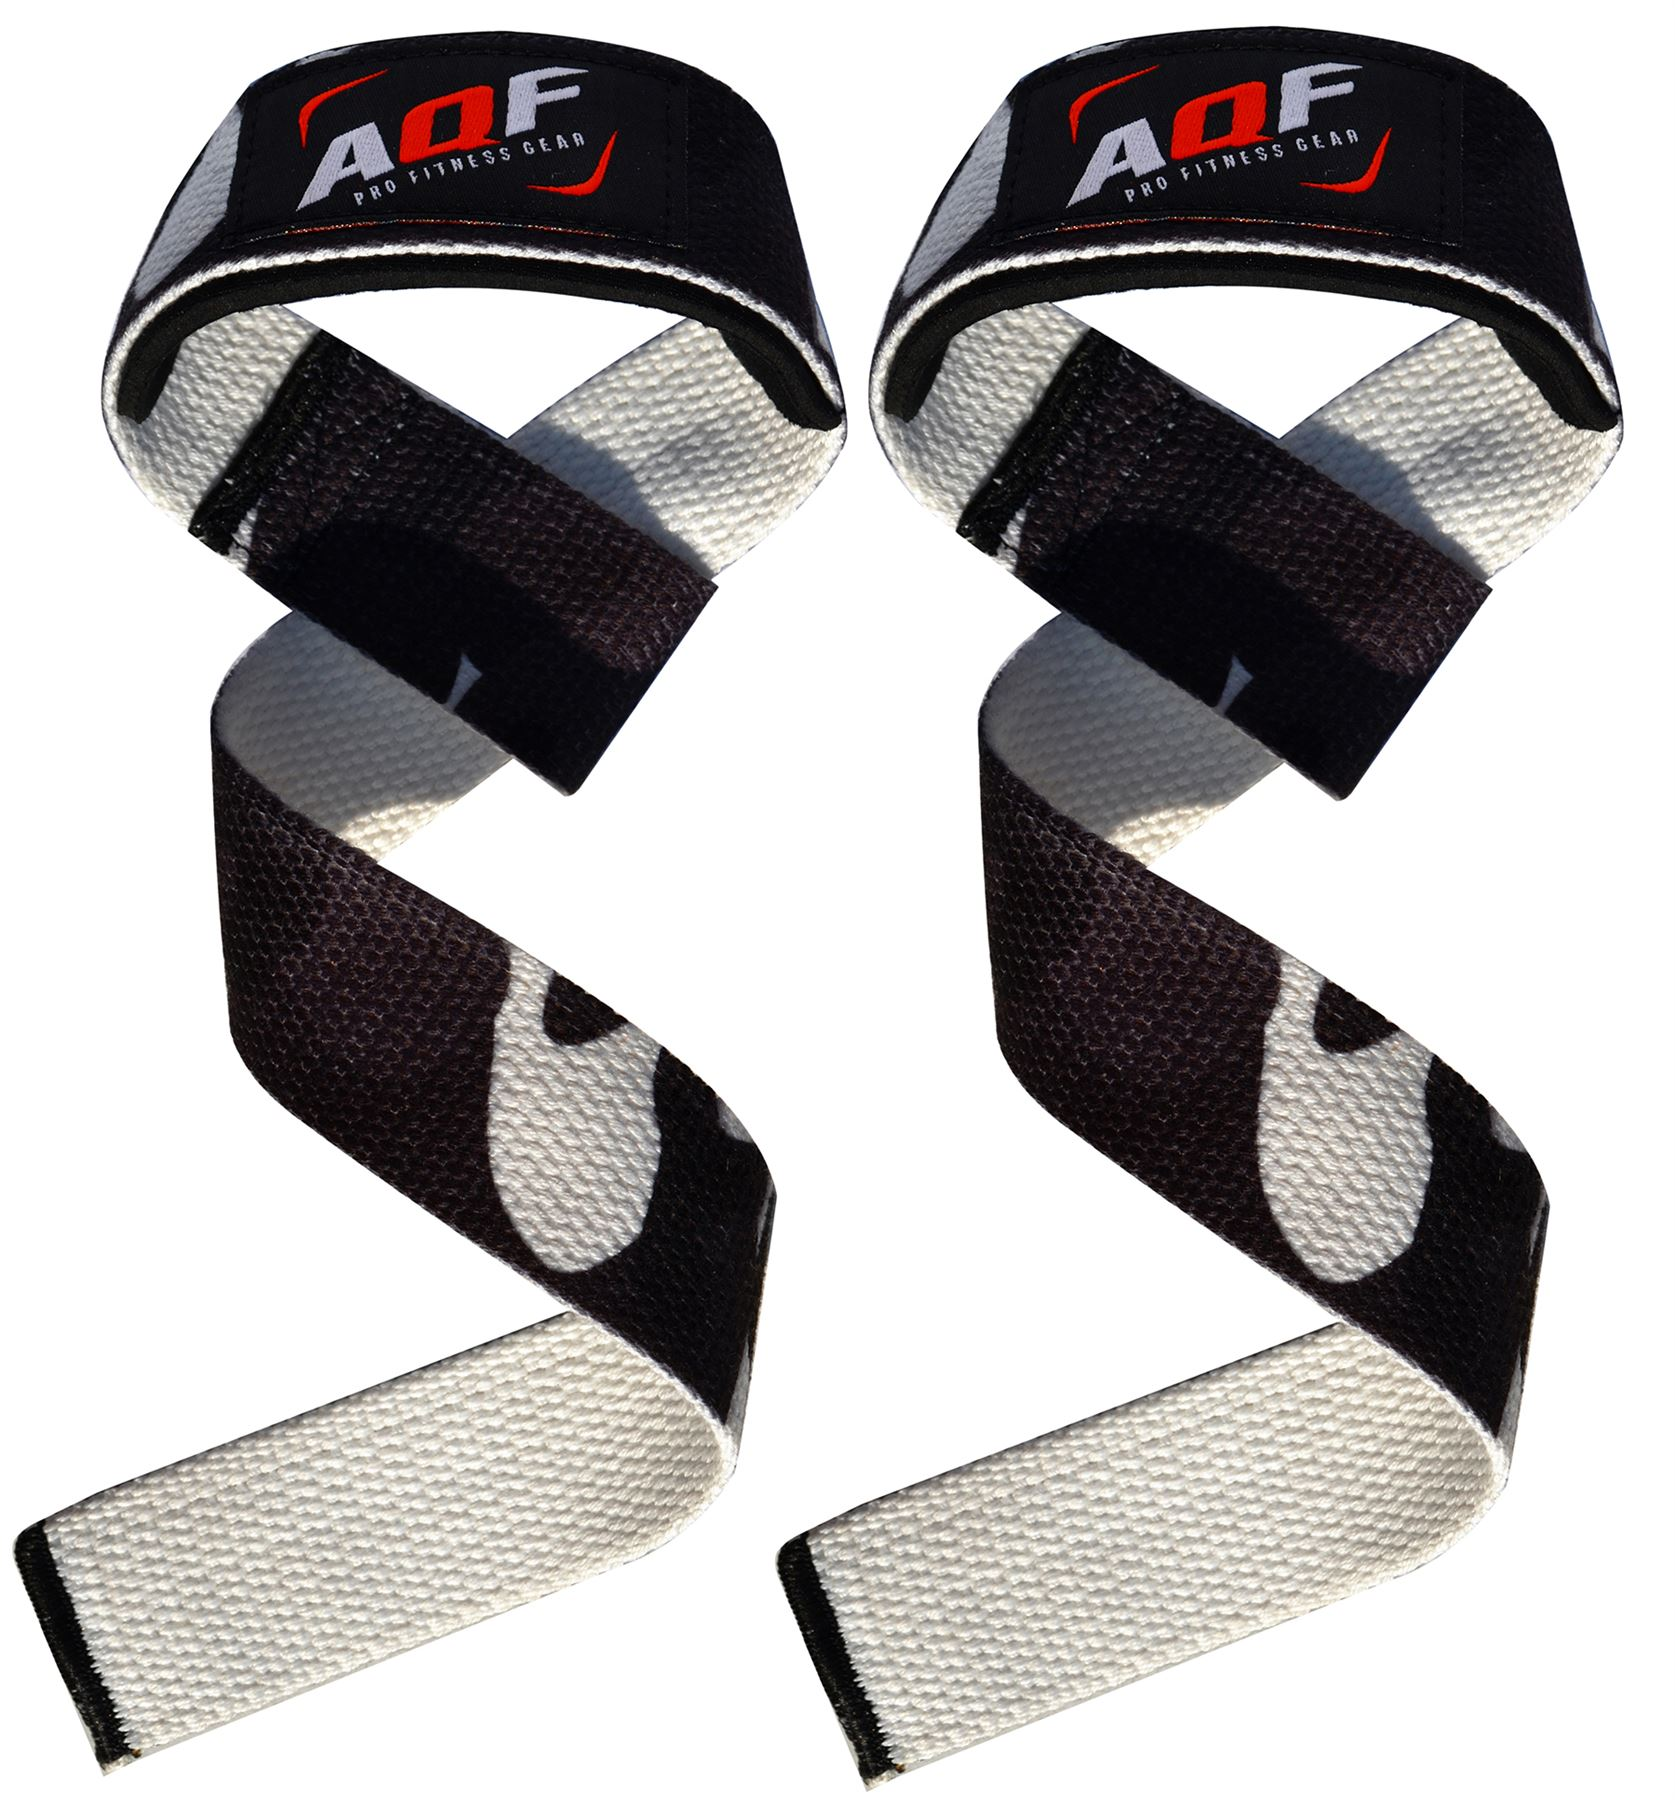 Weight Lifting Wrist Wraps Bandage Support Gloves Gym: AQF Padded Weight Lifting Straps Training Gym Hand Bar